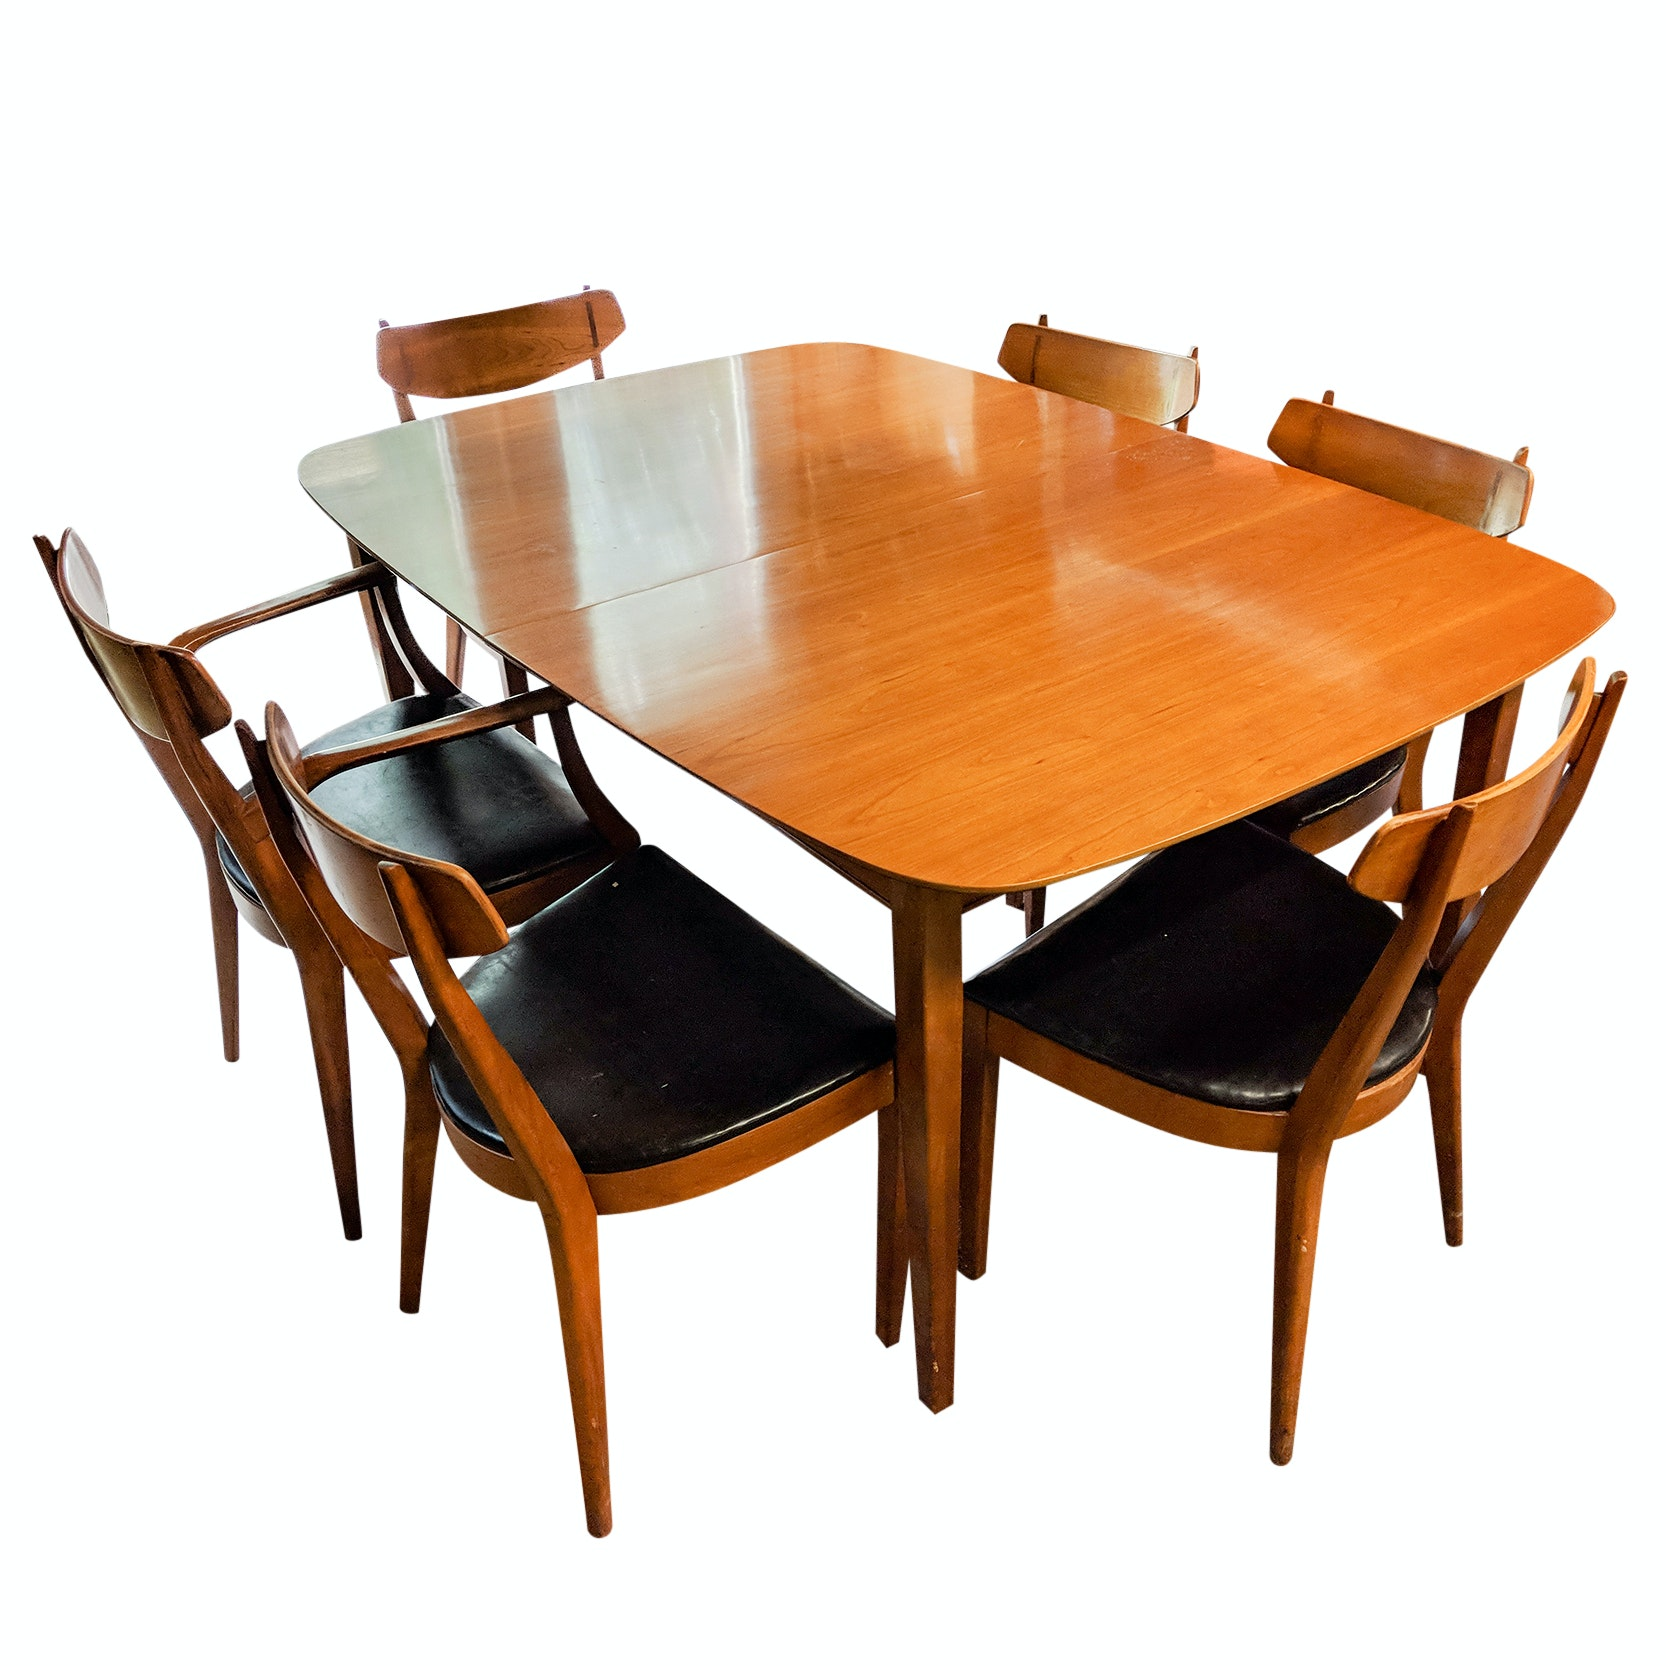 Mid-Century Modern Drexel Dining Table with Six Chairs